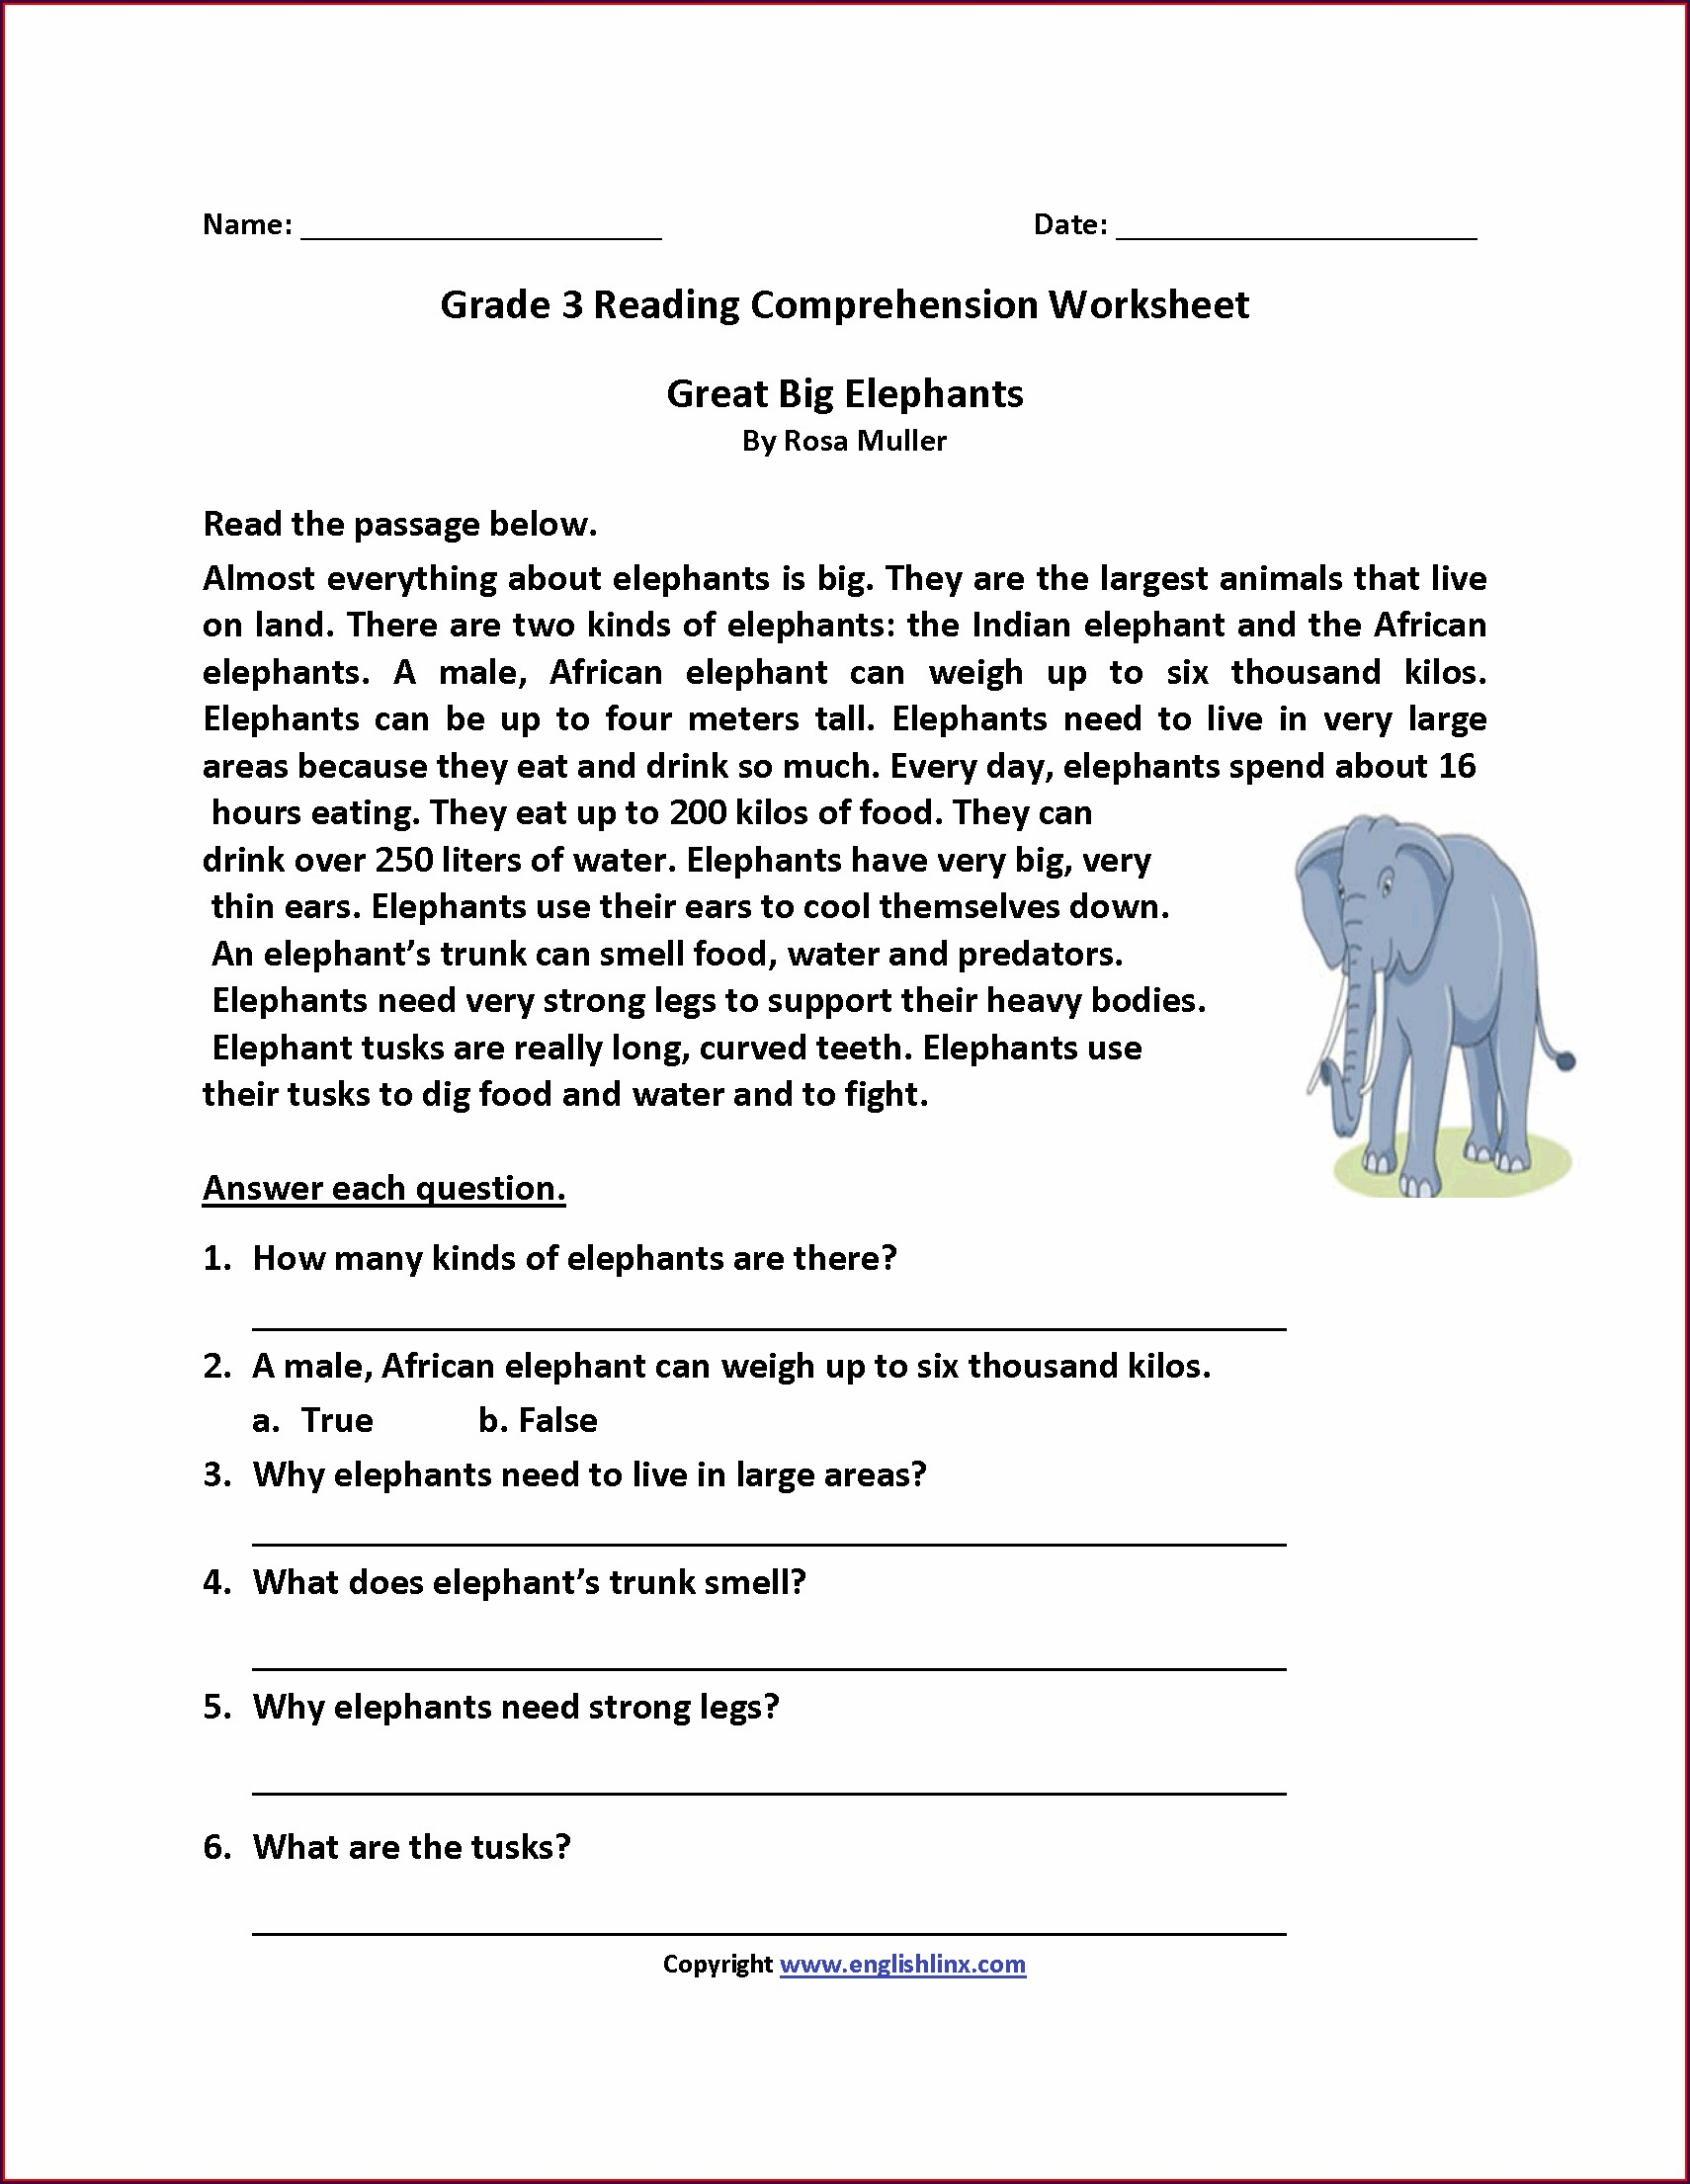 English Comprehension Worksheets For Grade 3 With Answers